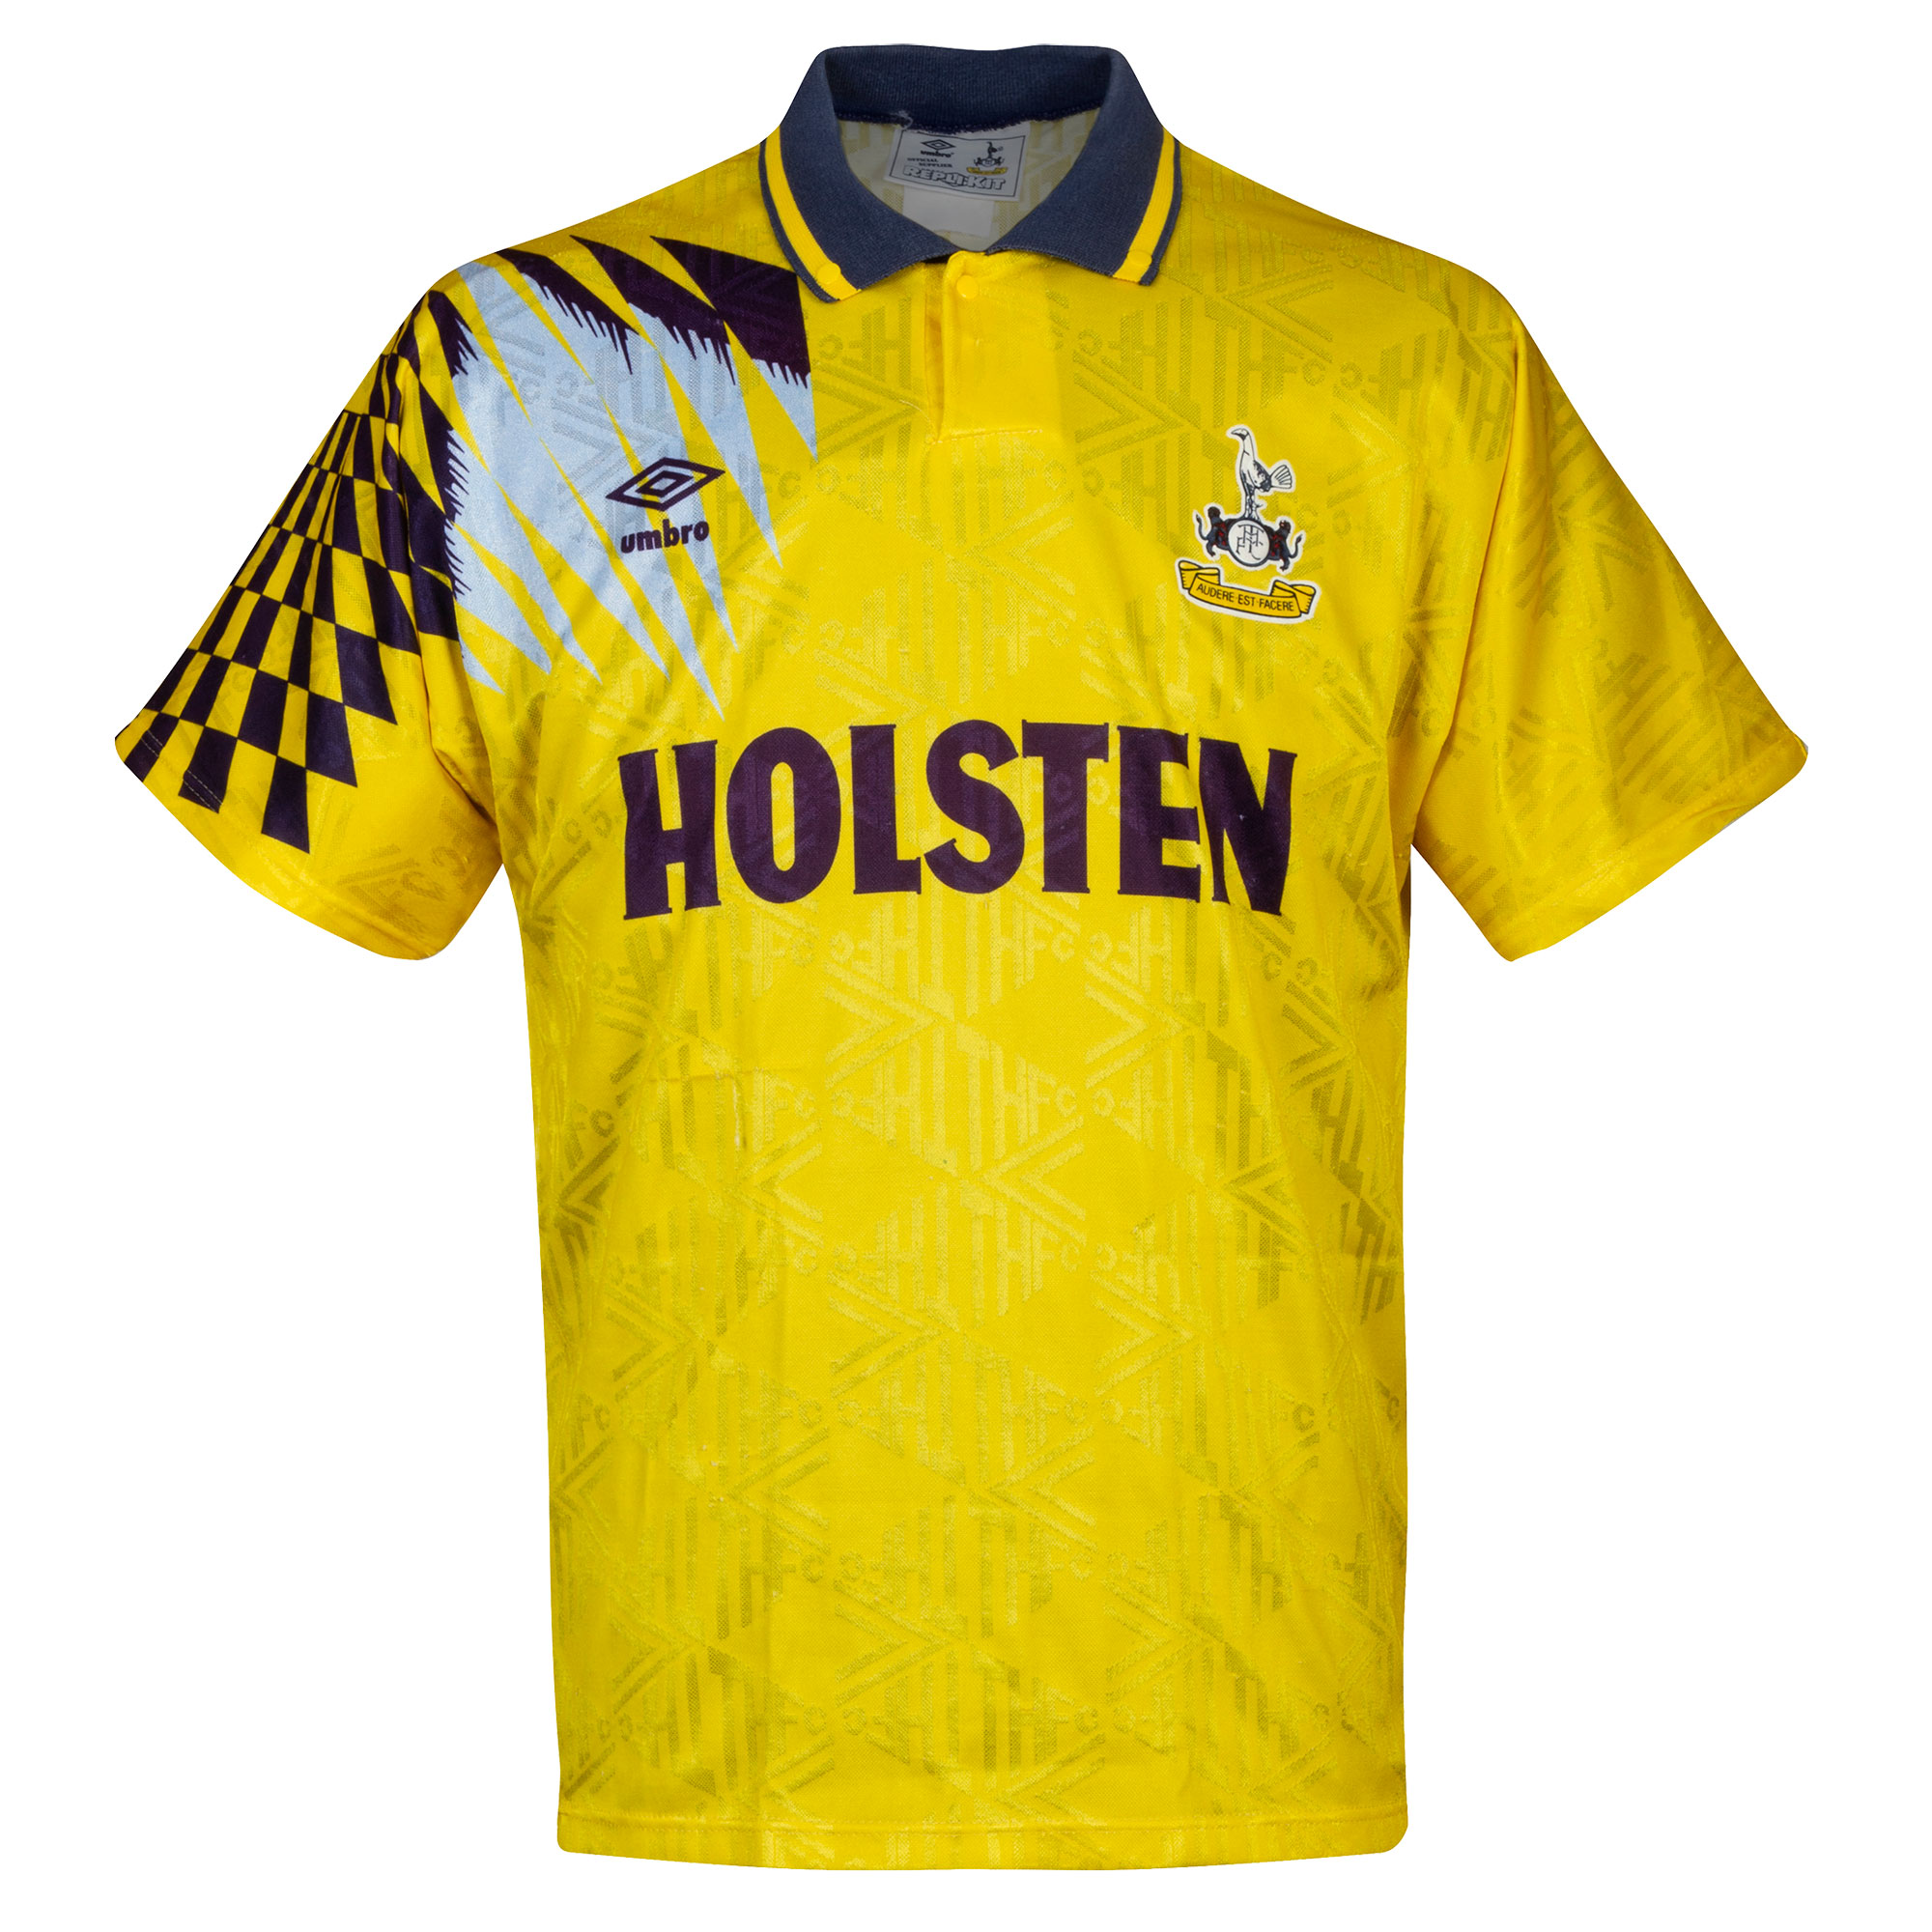 Umbro Tottenham Hotspur Away 1991-1994 Shirt - USED Condition (Poor) - Size Large